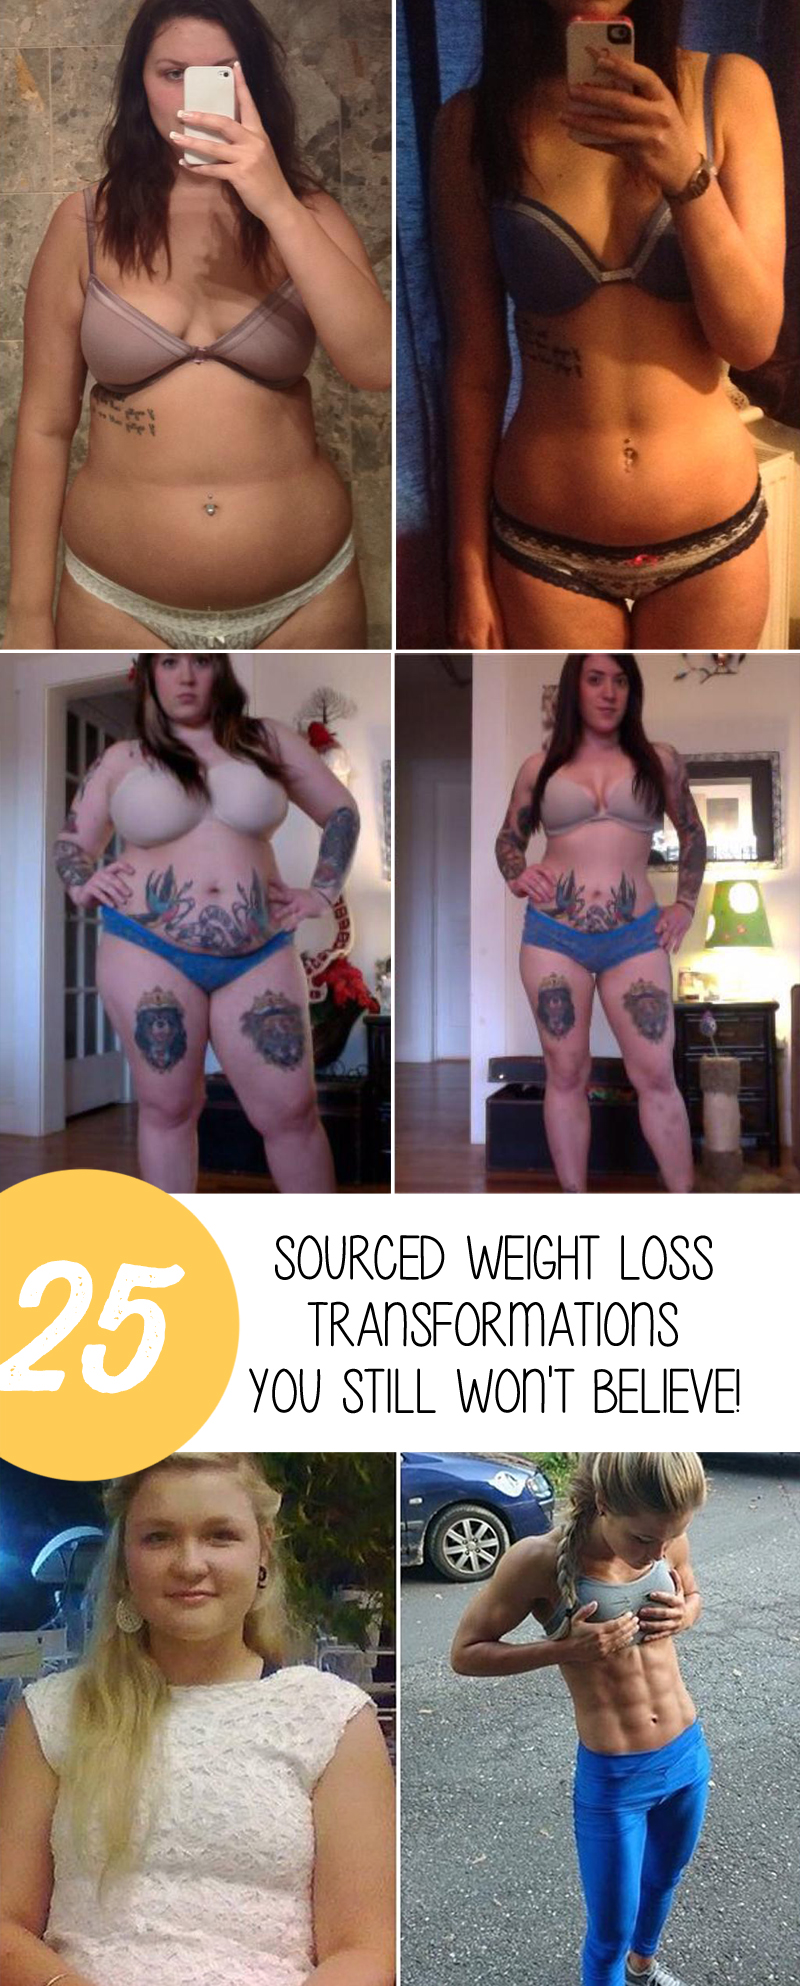 25SourcedWeightLossTransformations